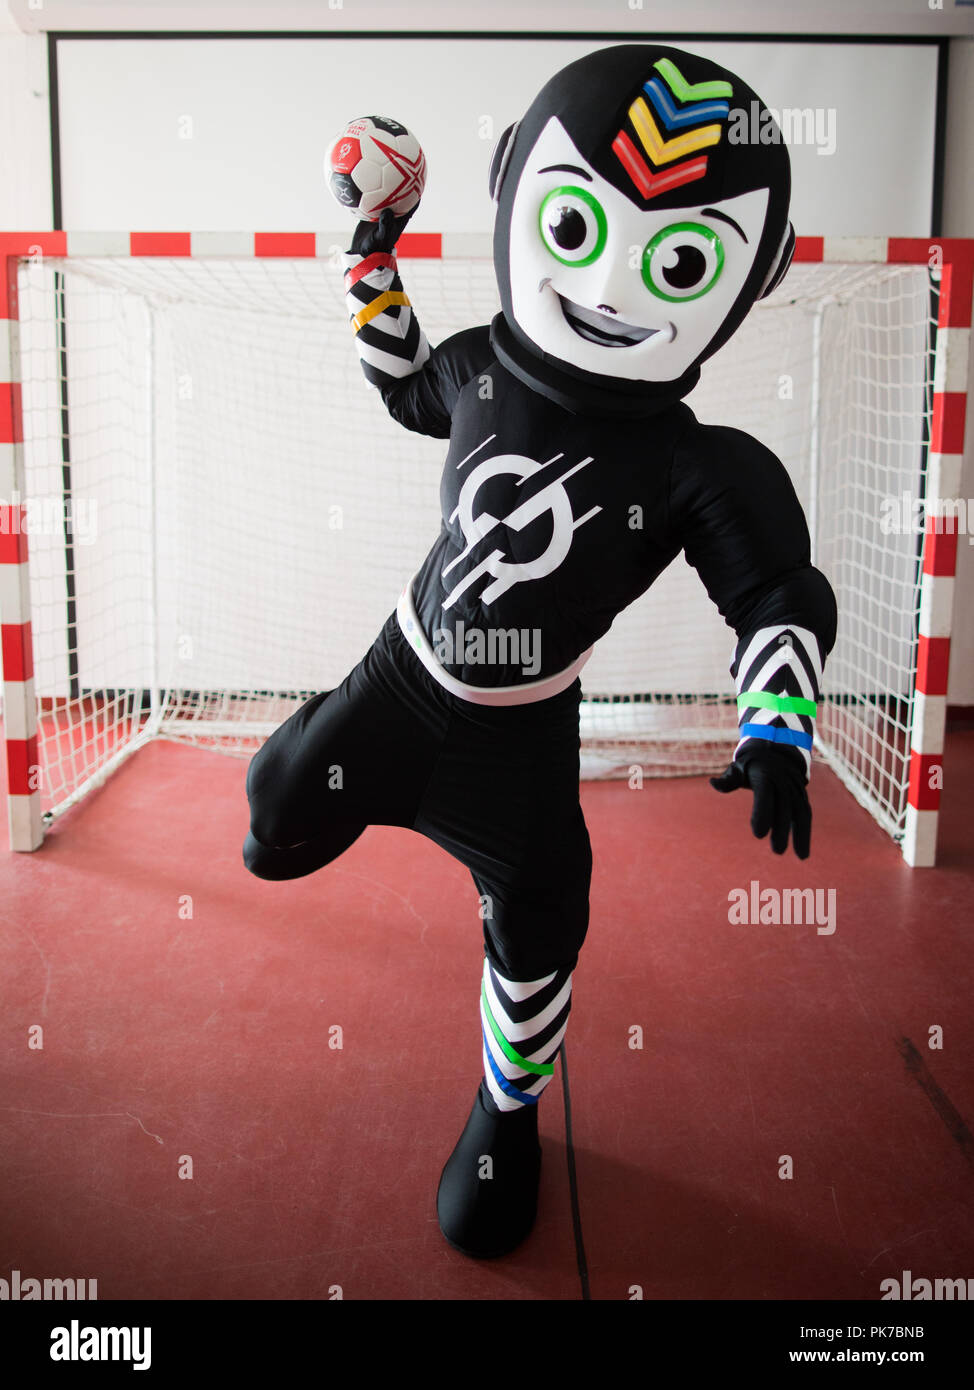 Official Mascot Handball World Championship Stock Photos